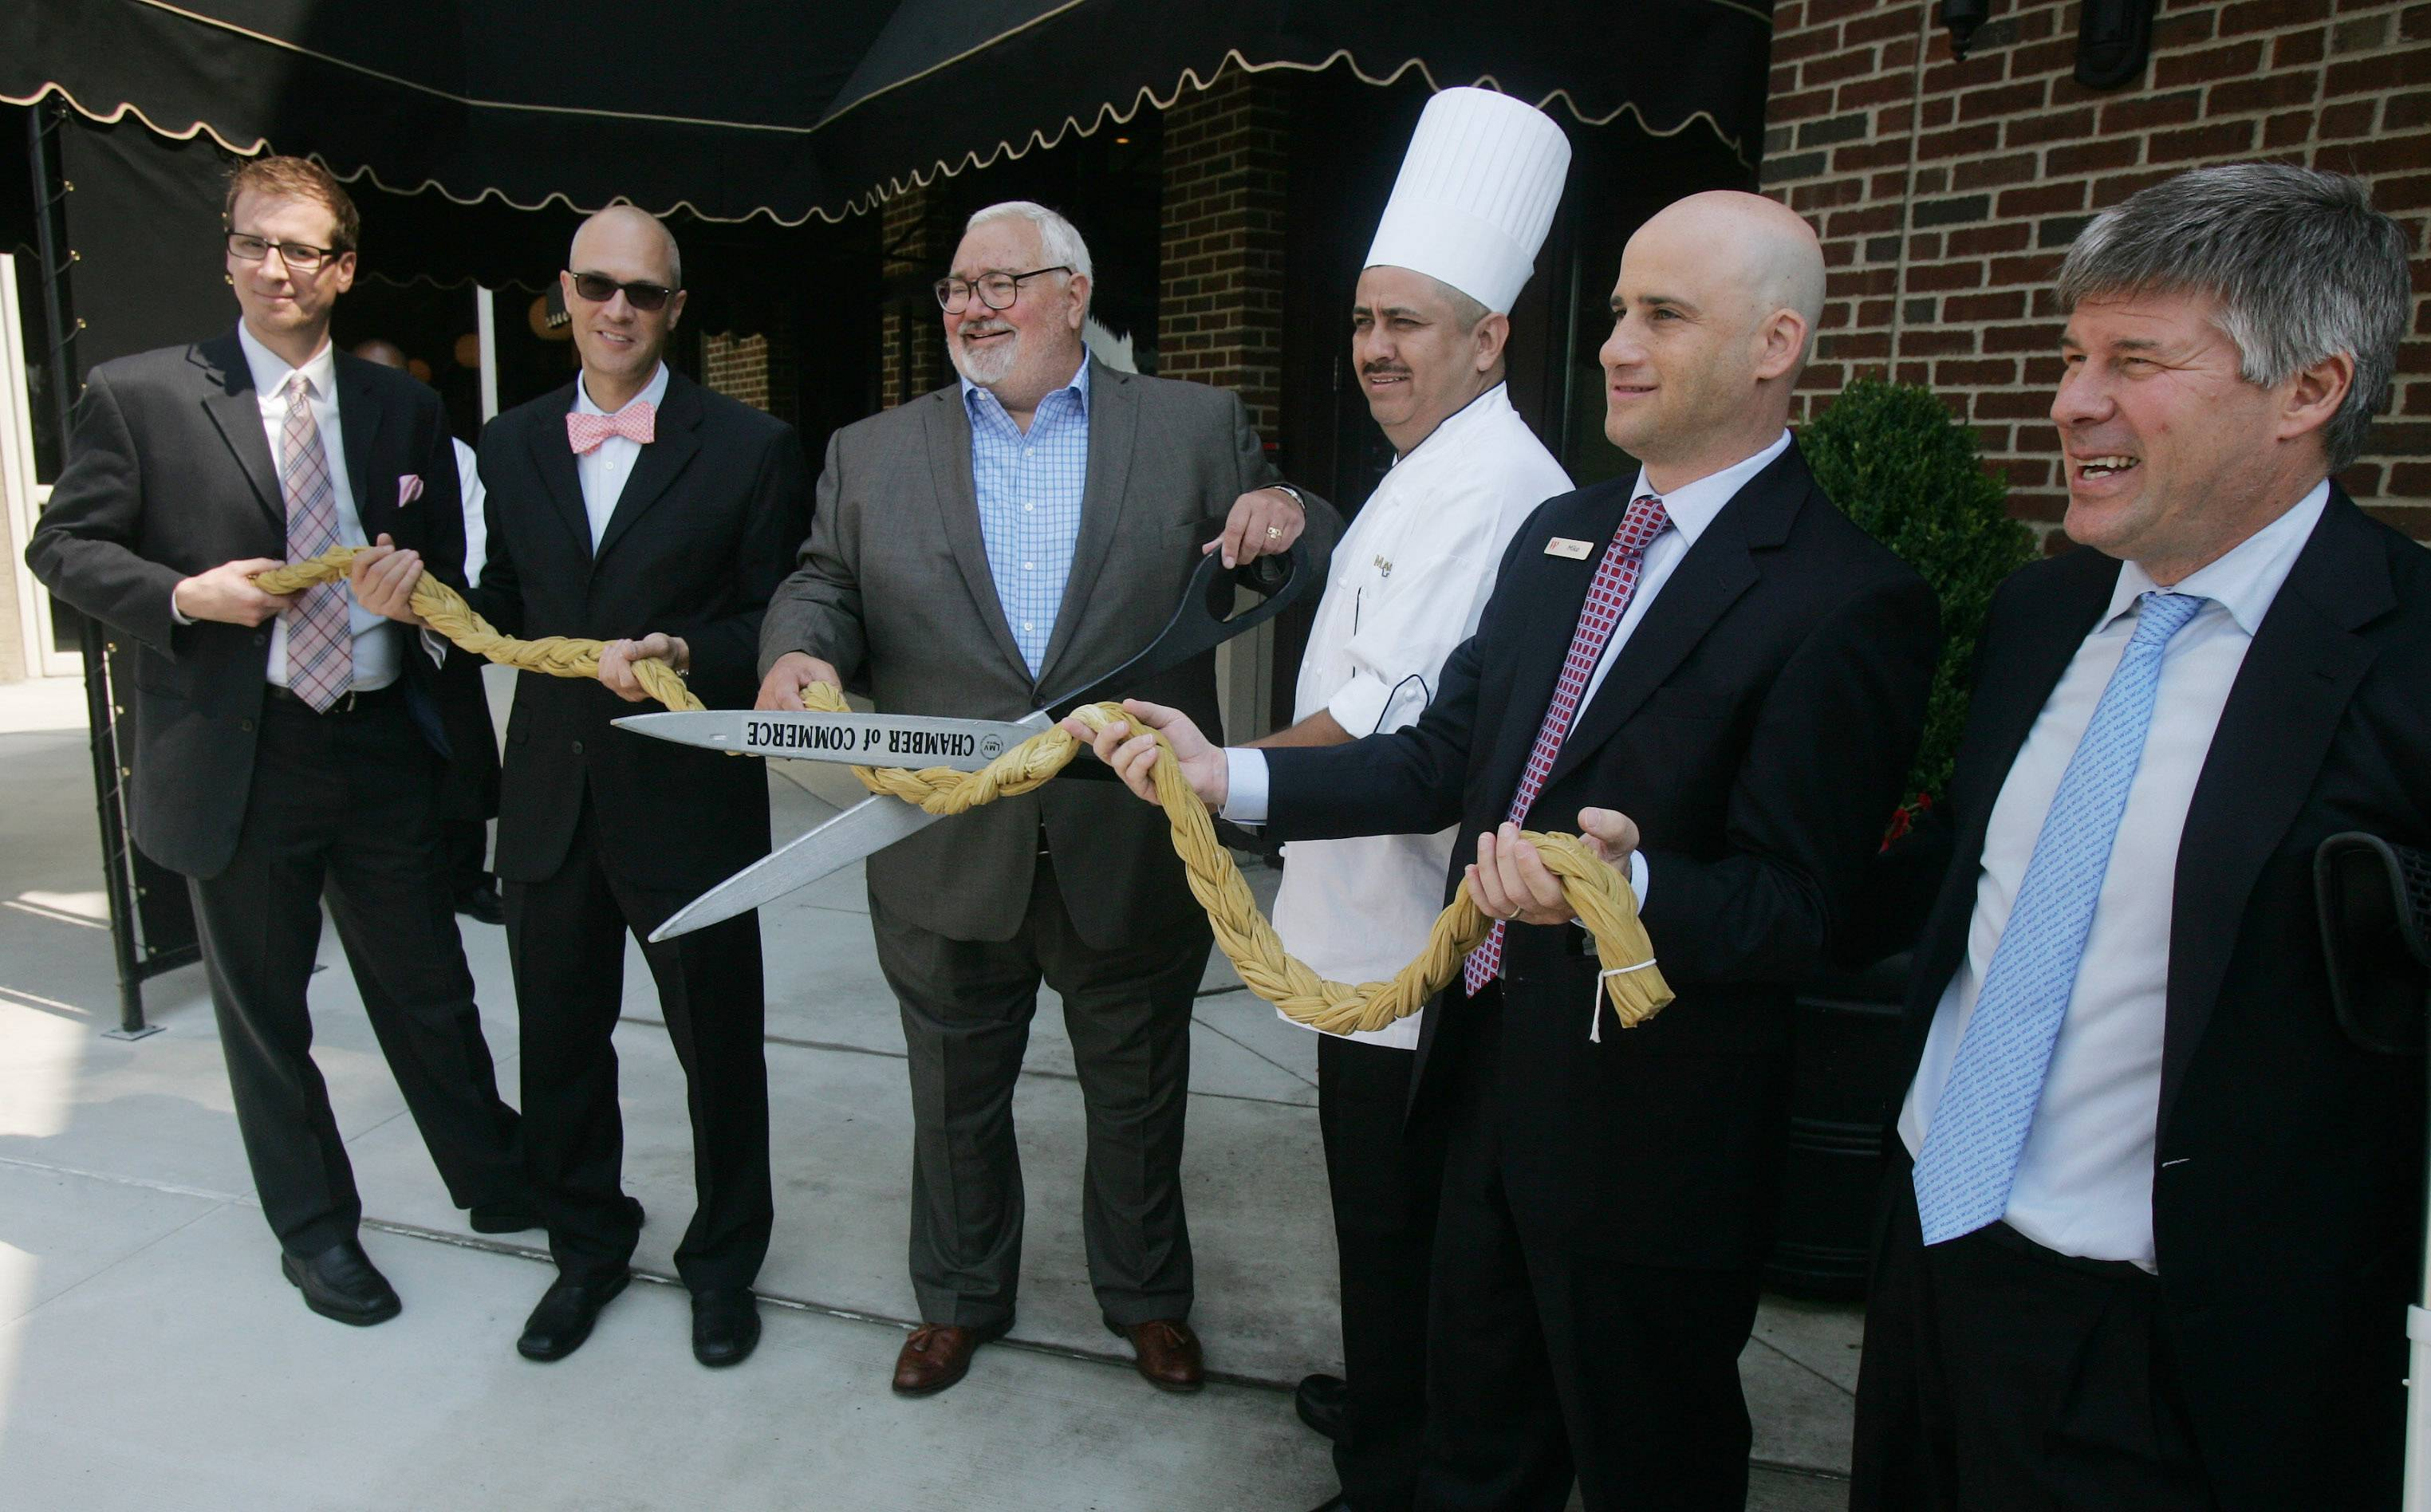 Vernon Hills Village President Roger Byrne holds the ceremonial scissors as a group of dignitaries cut a braid of pasta during the opening of Maggiano's Little Italy at Westfield Hawthorn shopping center Monday in Vernon Hills. This is the 47th Maggiano's nationwide. From left are Maggiano's Area Director Brian Moffitt, Maggiano's General Manager Ron Darnell, Byrne, Executive Chef Arturo Alvarado, Westfield Hawthorn General Manager Michael Golden and Maggiano's President Steve Provost.